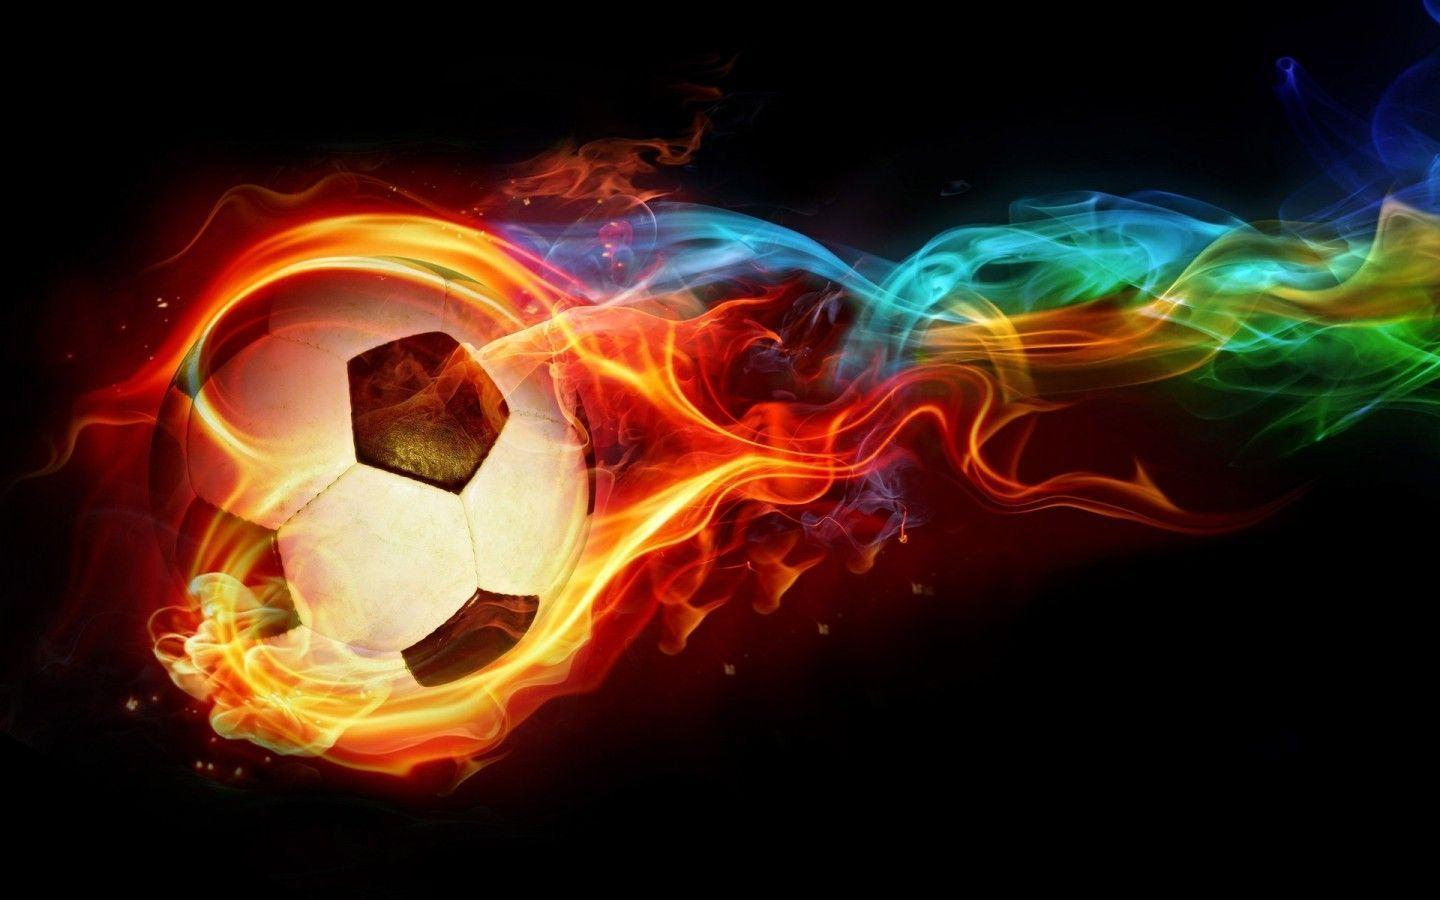 Cool Soccer wallpapers – Chooses the Best for Your PC